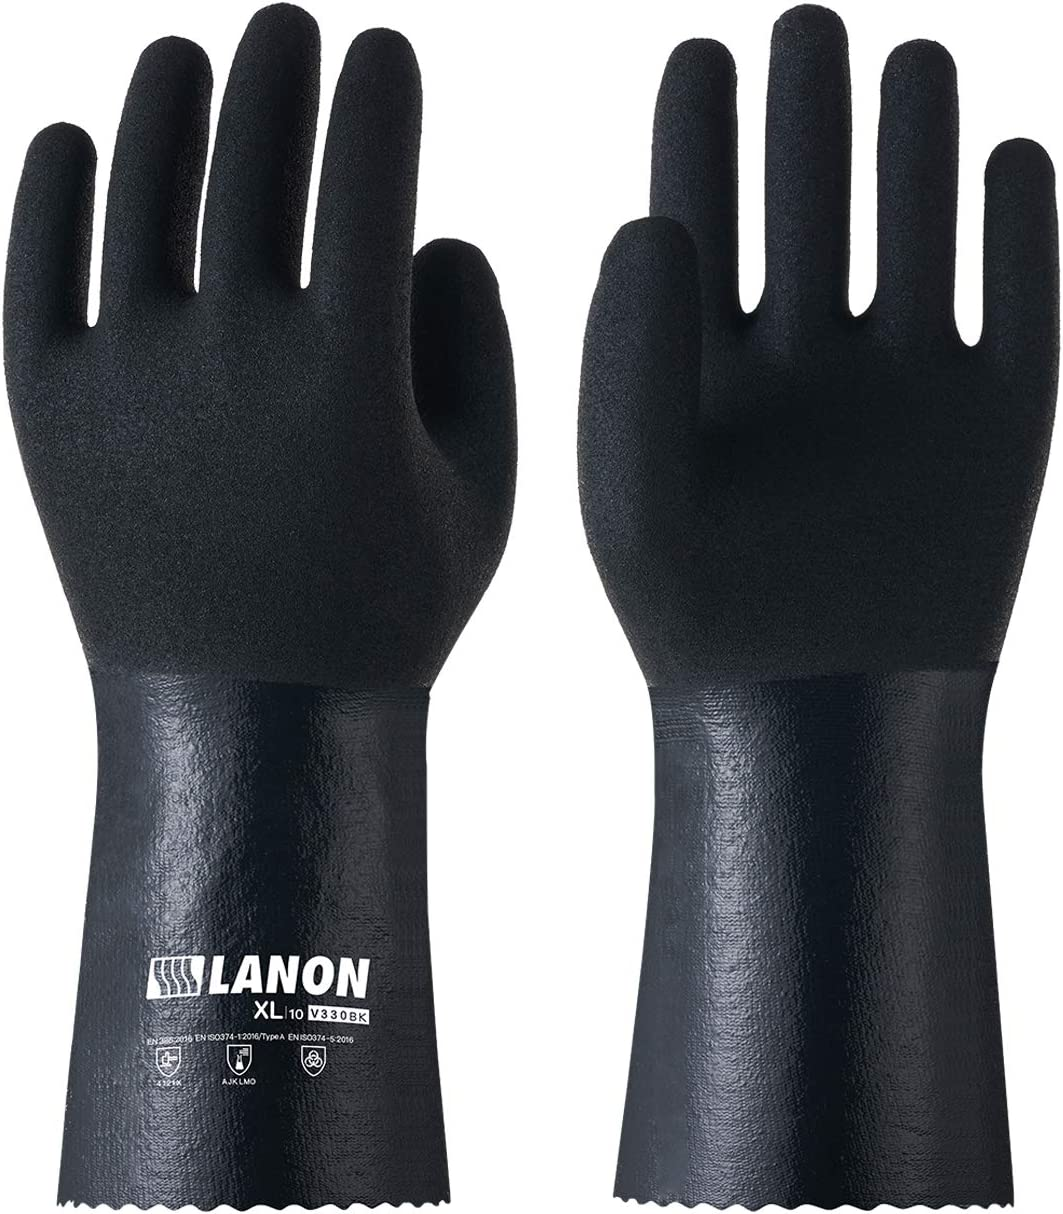 LANON Nitrile Chemical Resistant Gloves, Heavy Duty Work Gloves, Micro Foam Non-slip, Latex Free, Reusable, CAT III, Extra Extra Large